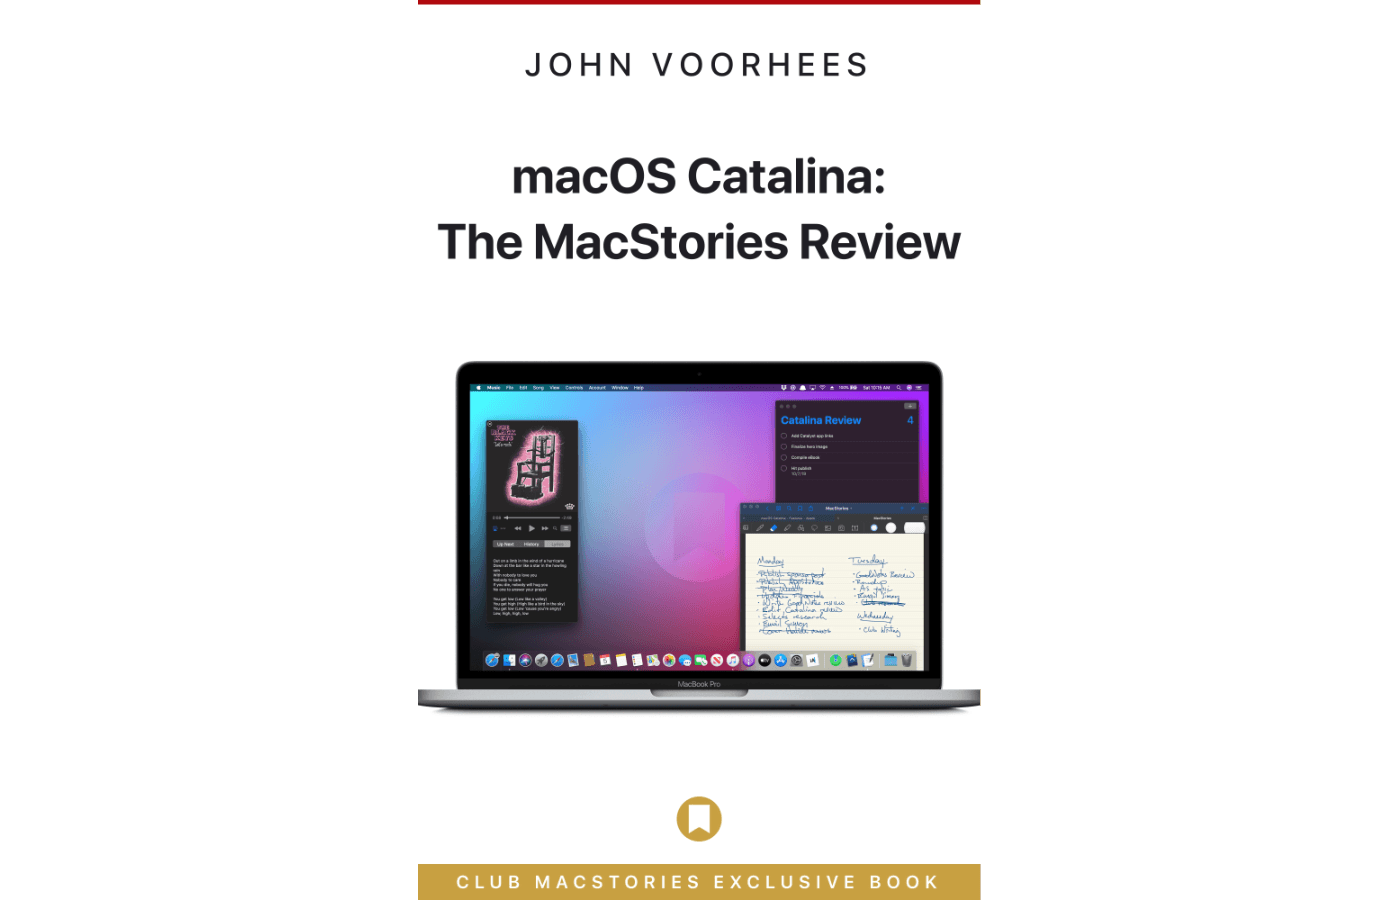 macOS Catalina: The MacStories Review